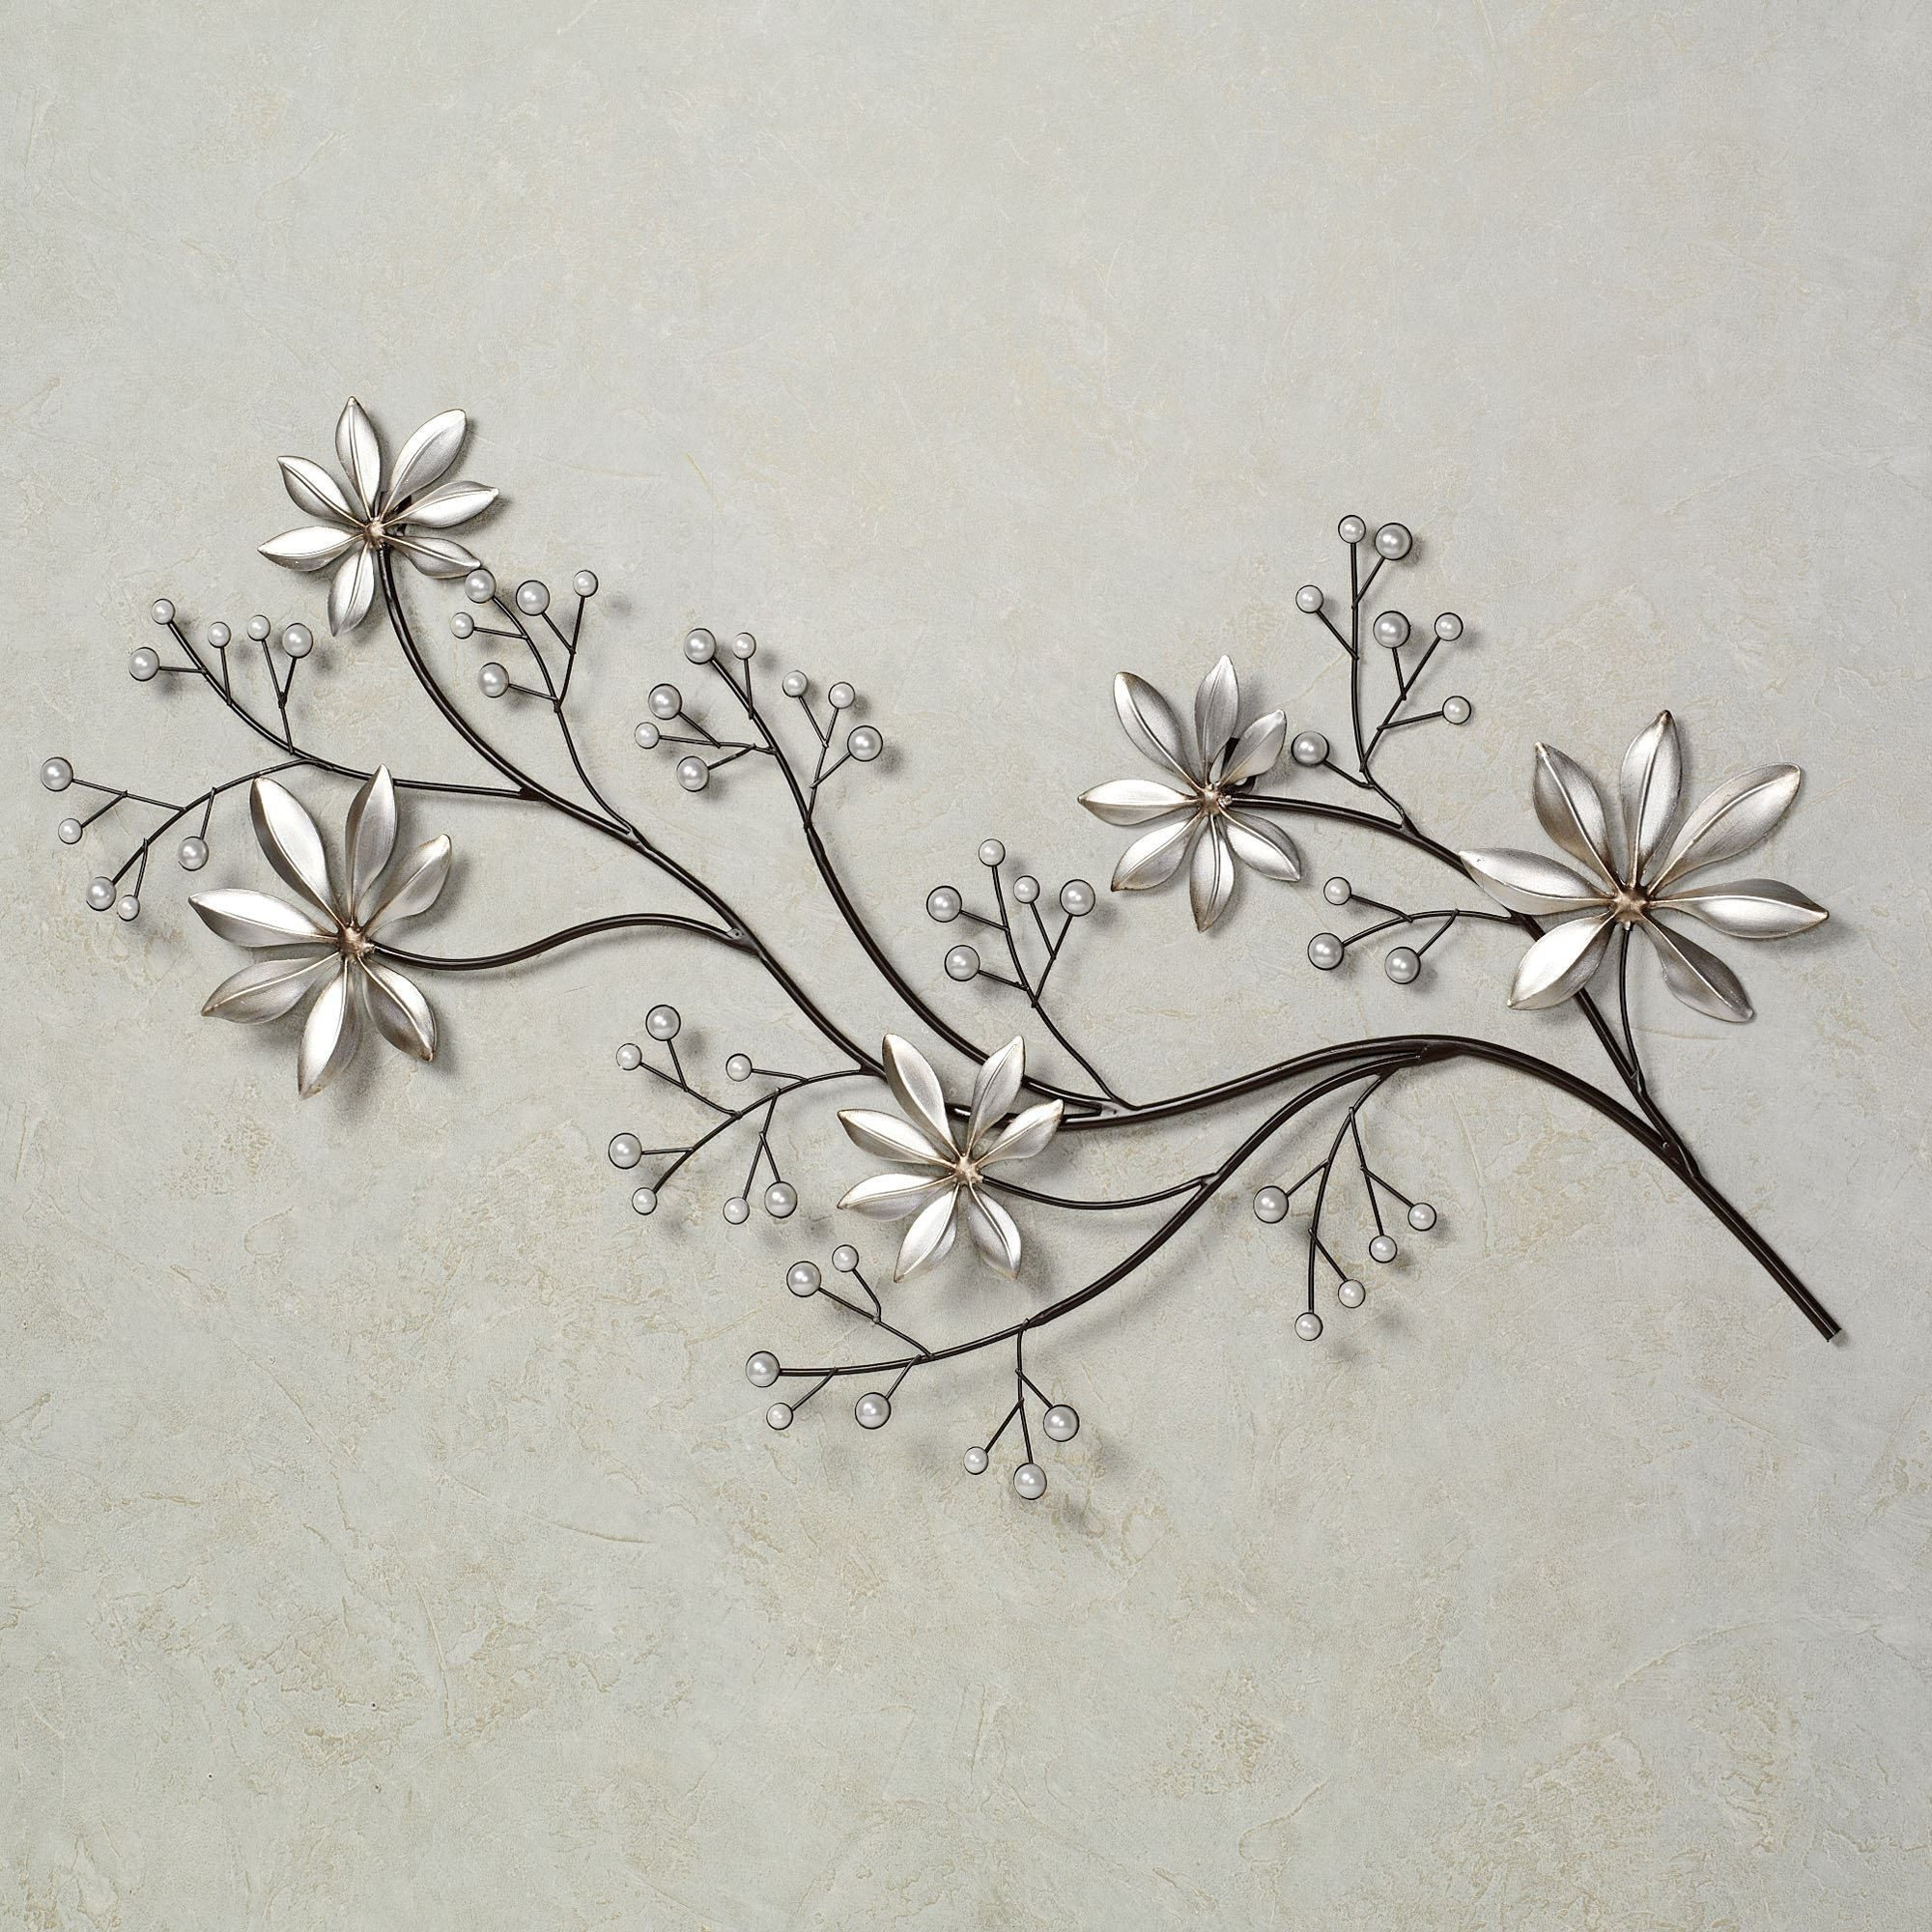 Widely Used Wall Décor By Brayden Studio Inside Metal Wall Decor Leavesbrayden Studio Amazon (View 16 of 20)